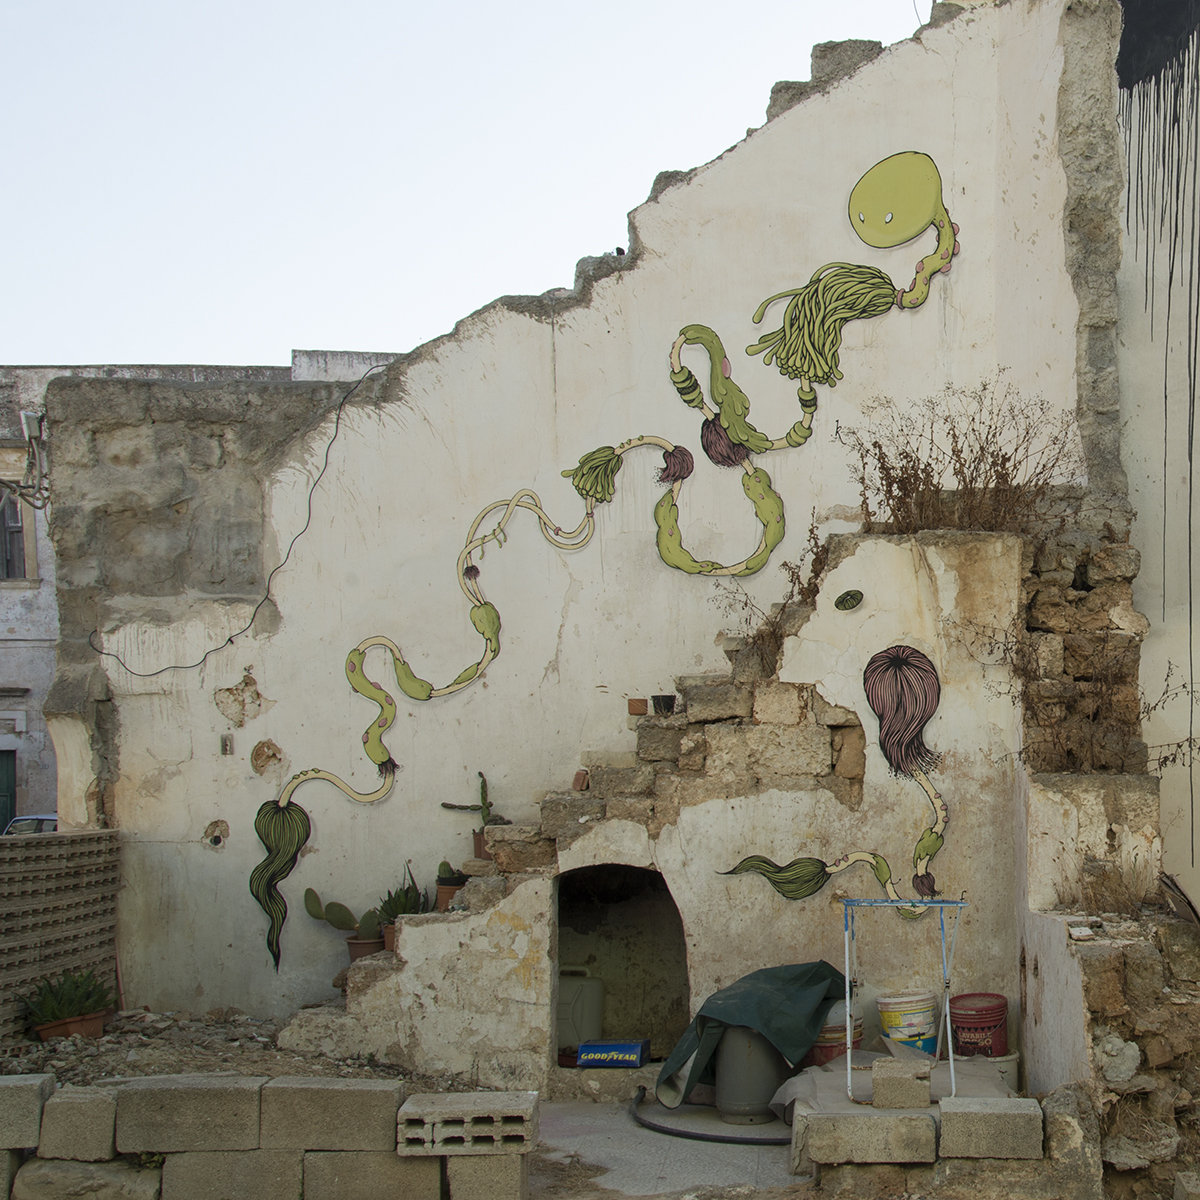 microbo-new-mural-for-viavai-project-01